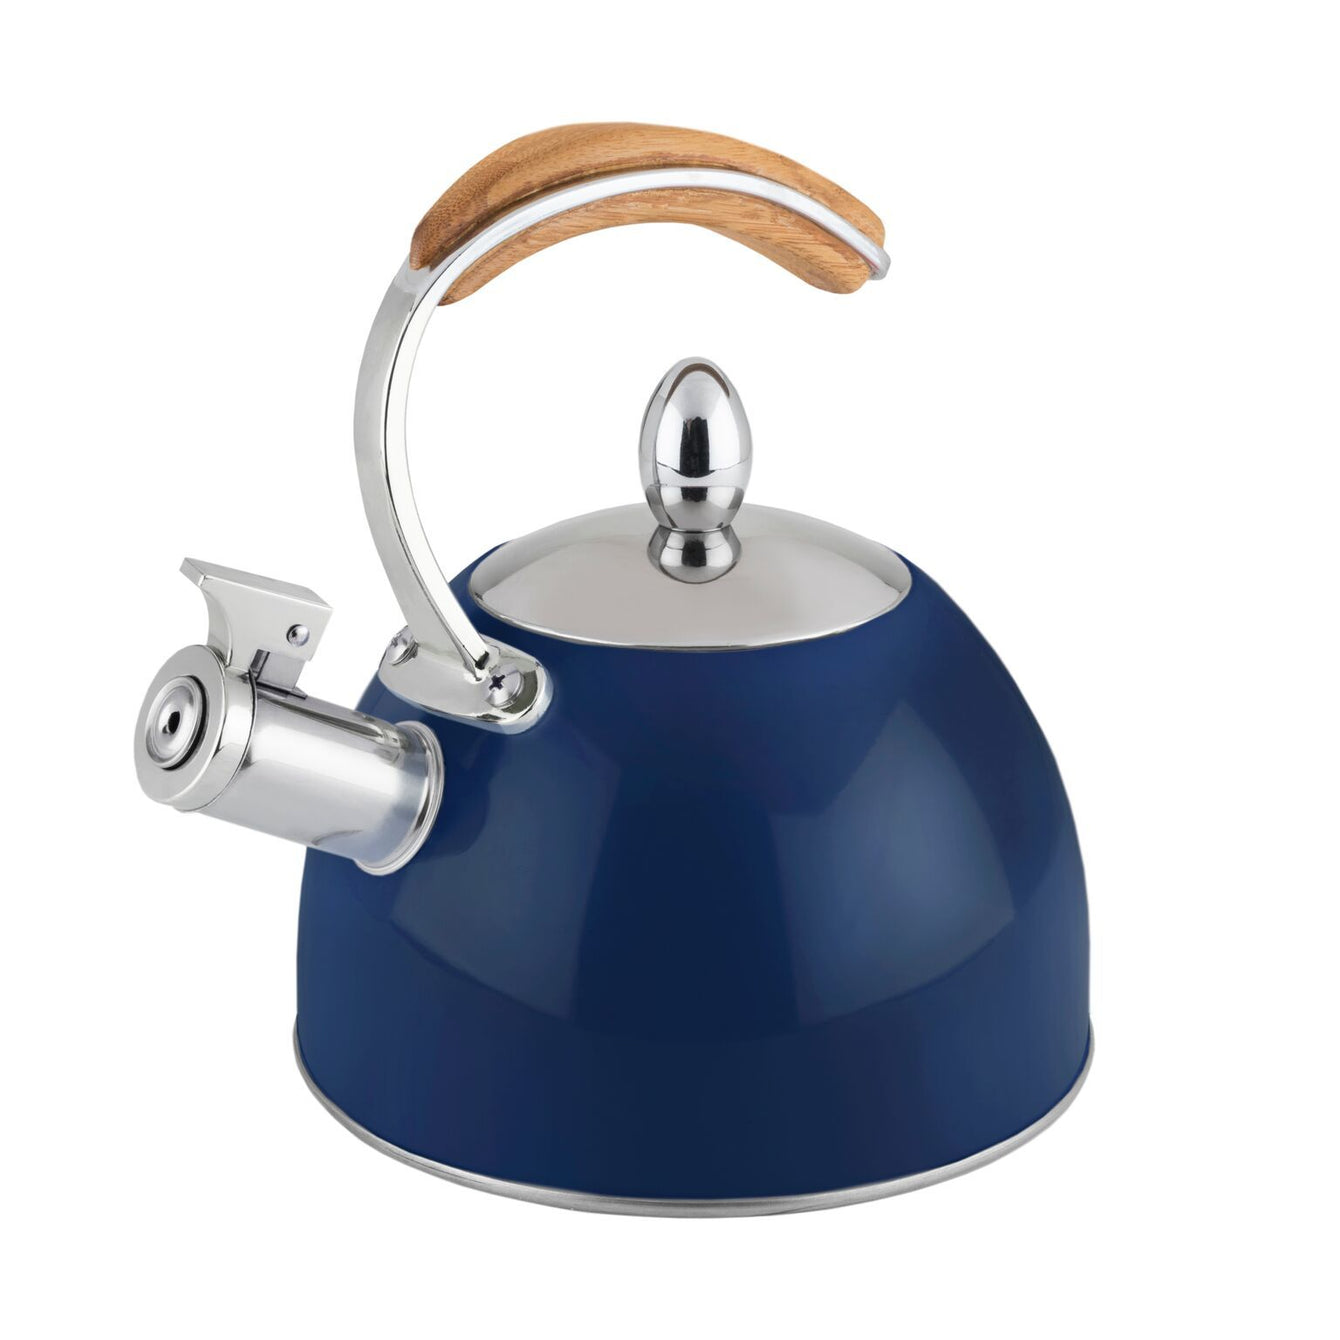 Presley Stainless Steel and Wood Tea Kettle-Home - Coffee + Tea - Tea Pots + Kettles-PINKY UP-Navy Blue-Peccadilly